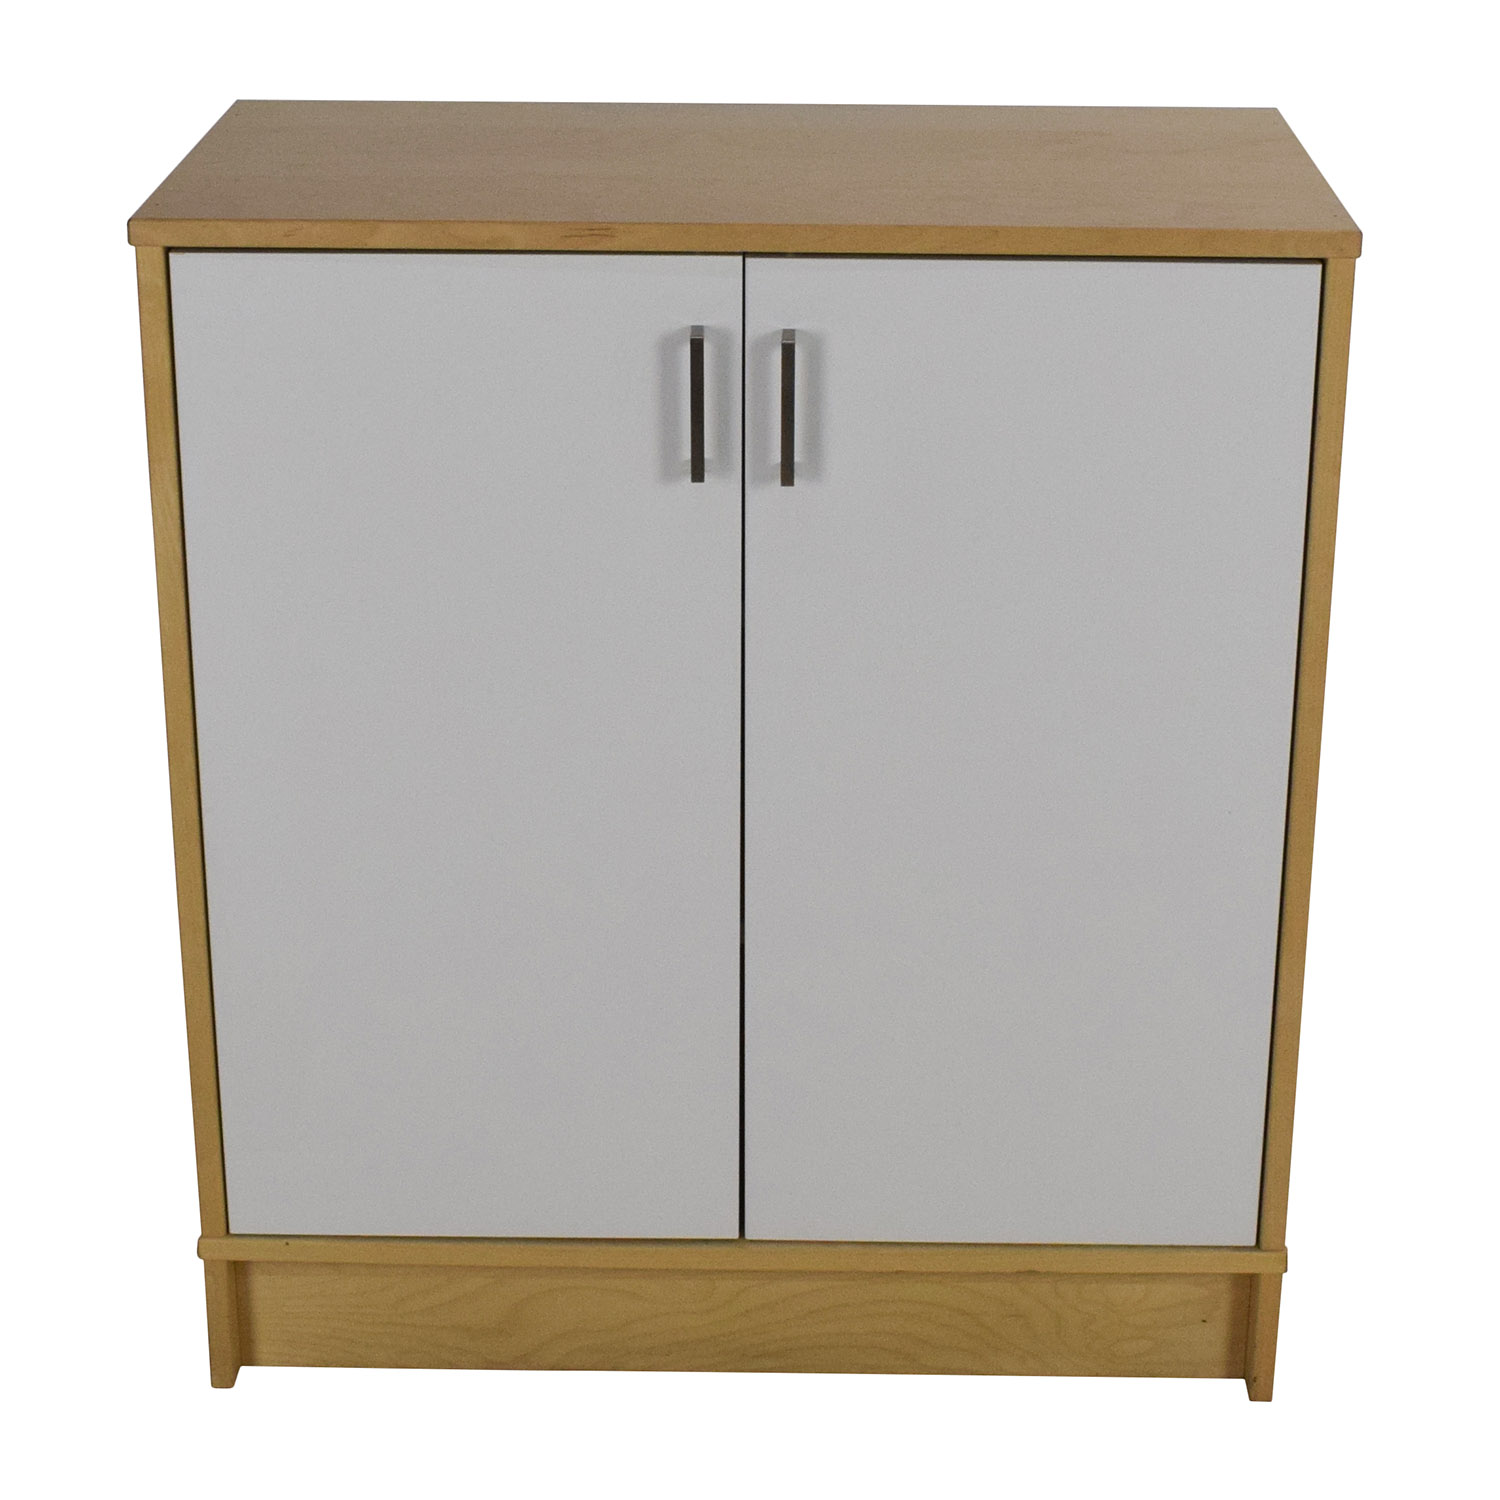 IKEA Cabinet Unit sale